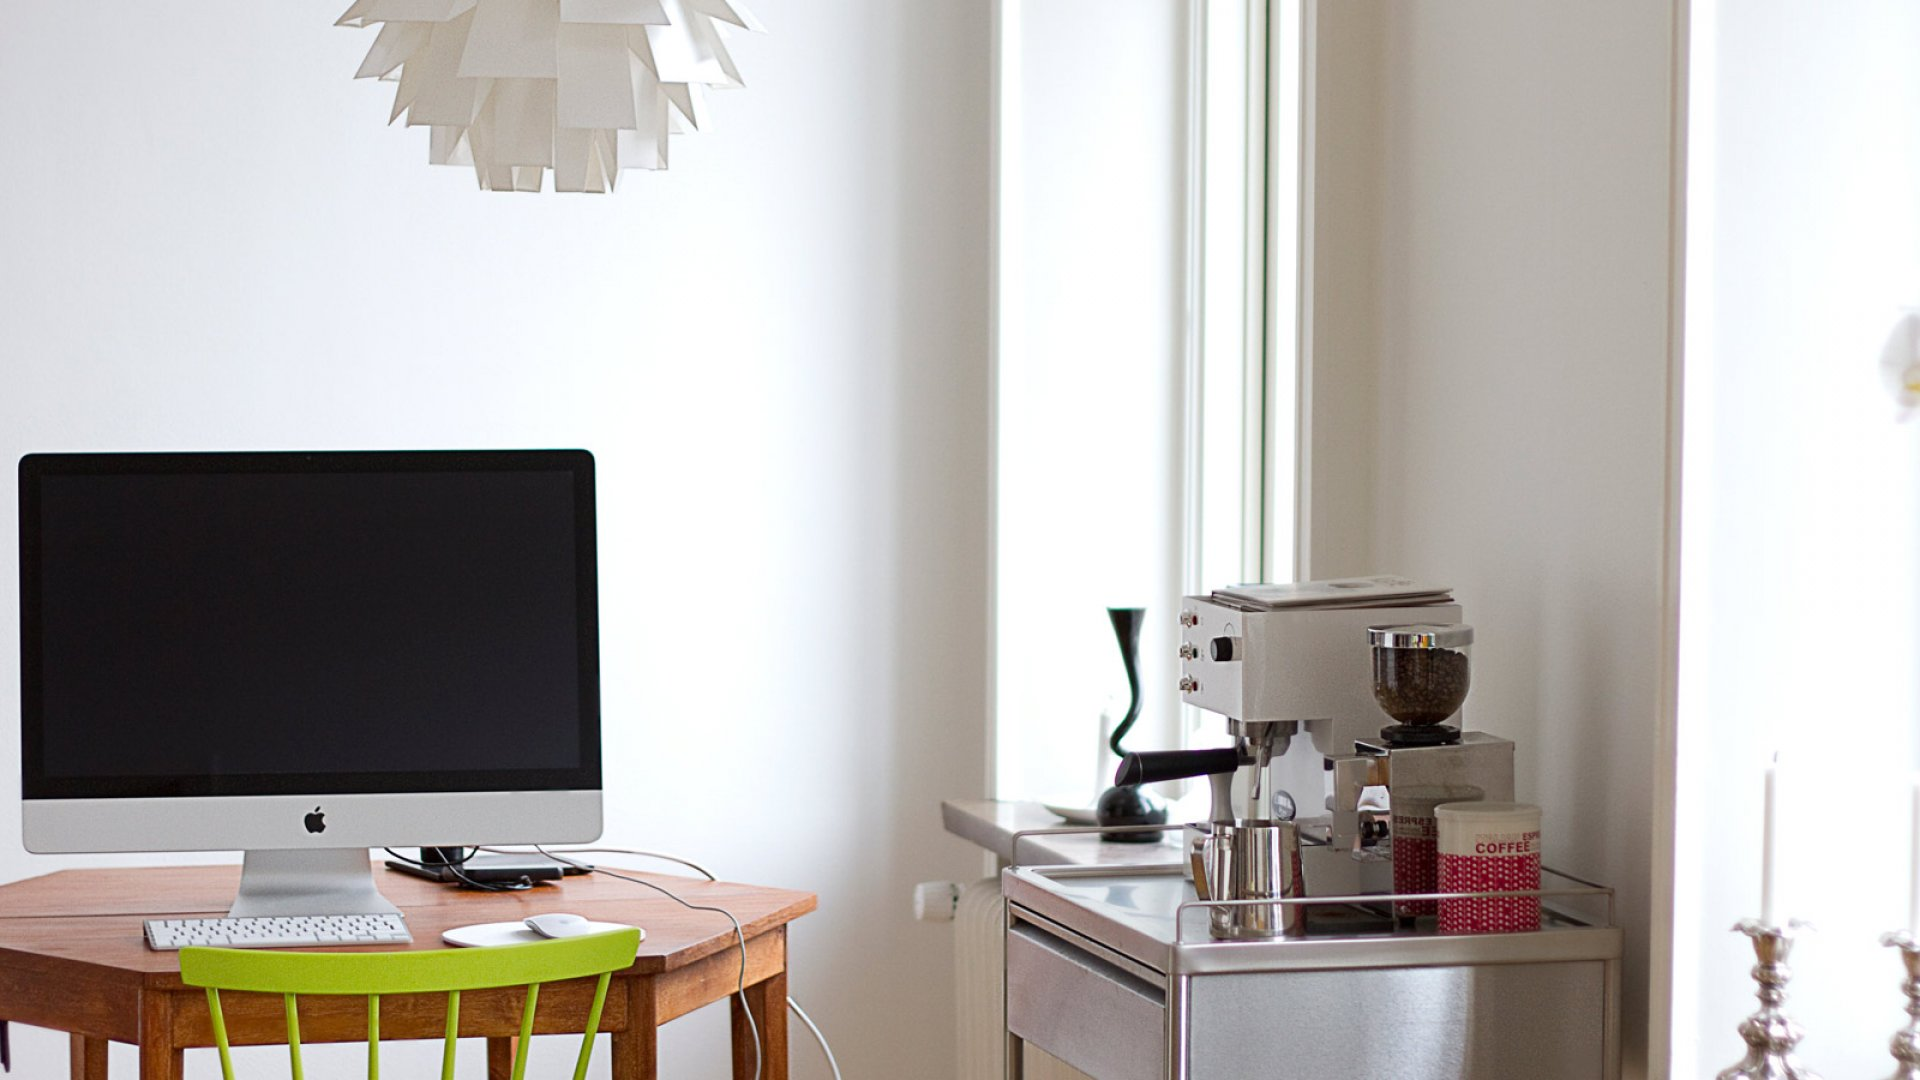 6 Steps to Make Working from Home Work